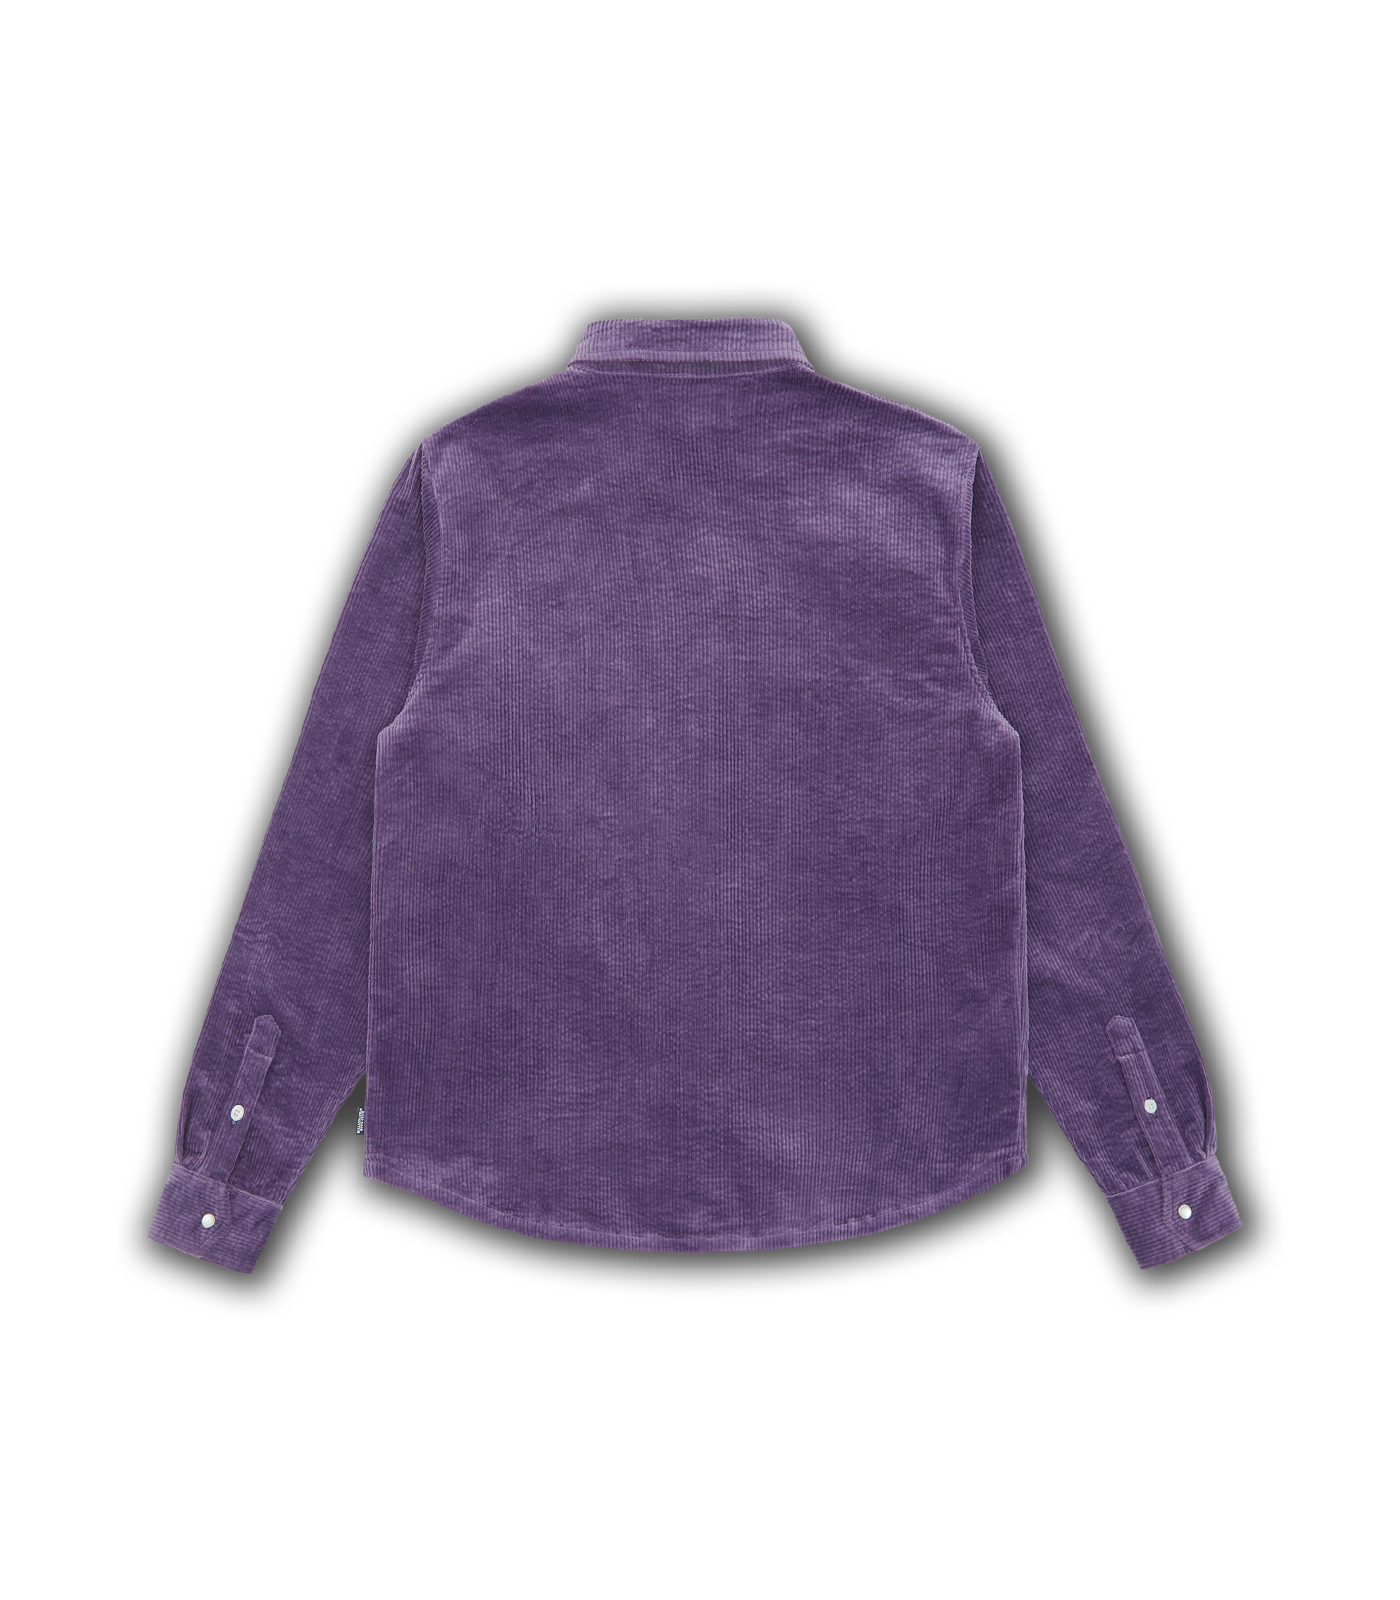 CORDUROY SHIRT - PURPLE